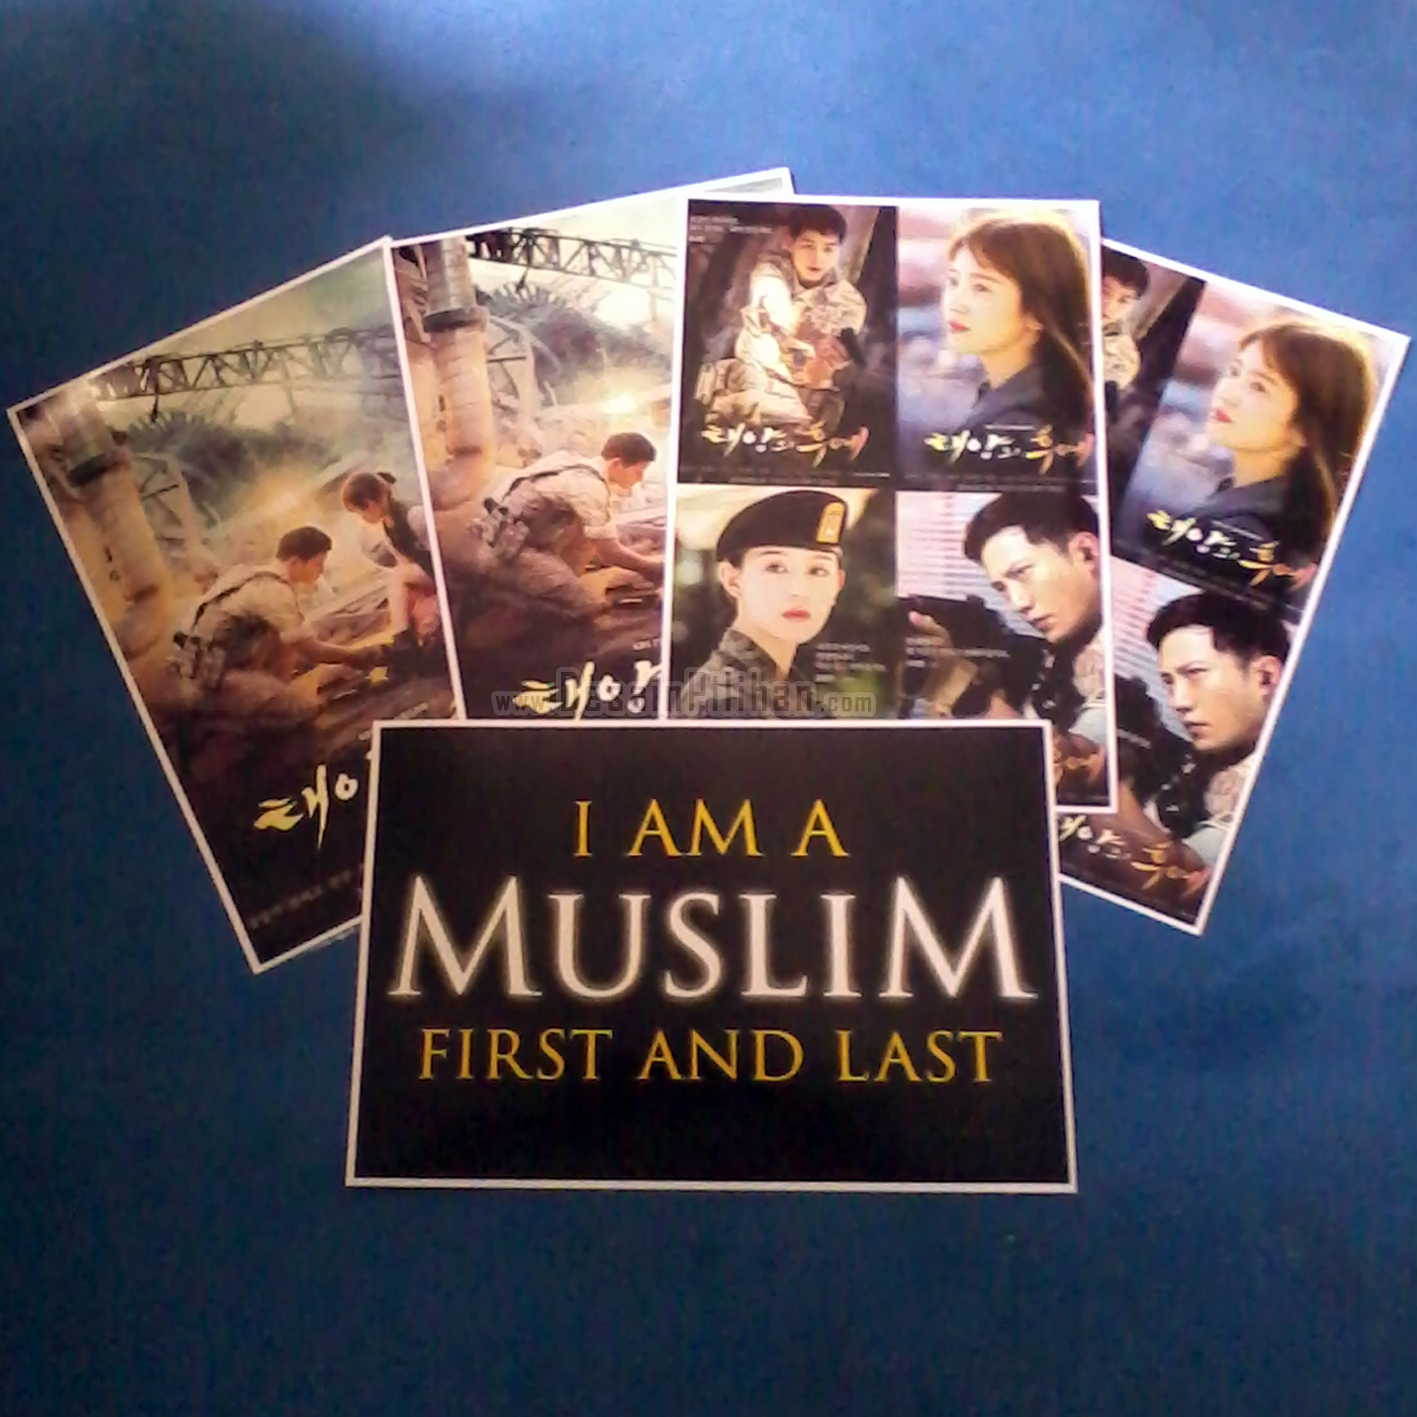 POSTER CUSTOM, POSTER MUSLIM, POSTER I AM MUSLIM FIRST AND LAST, POSTER SONG HYE KYO, POSTER SONG JOONG KYE, POSTER DESCENDANTS OF THE SUN